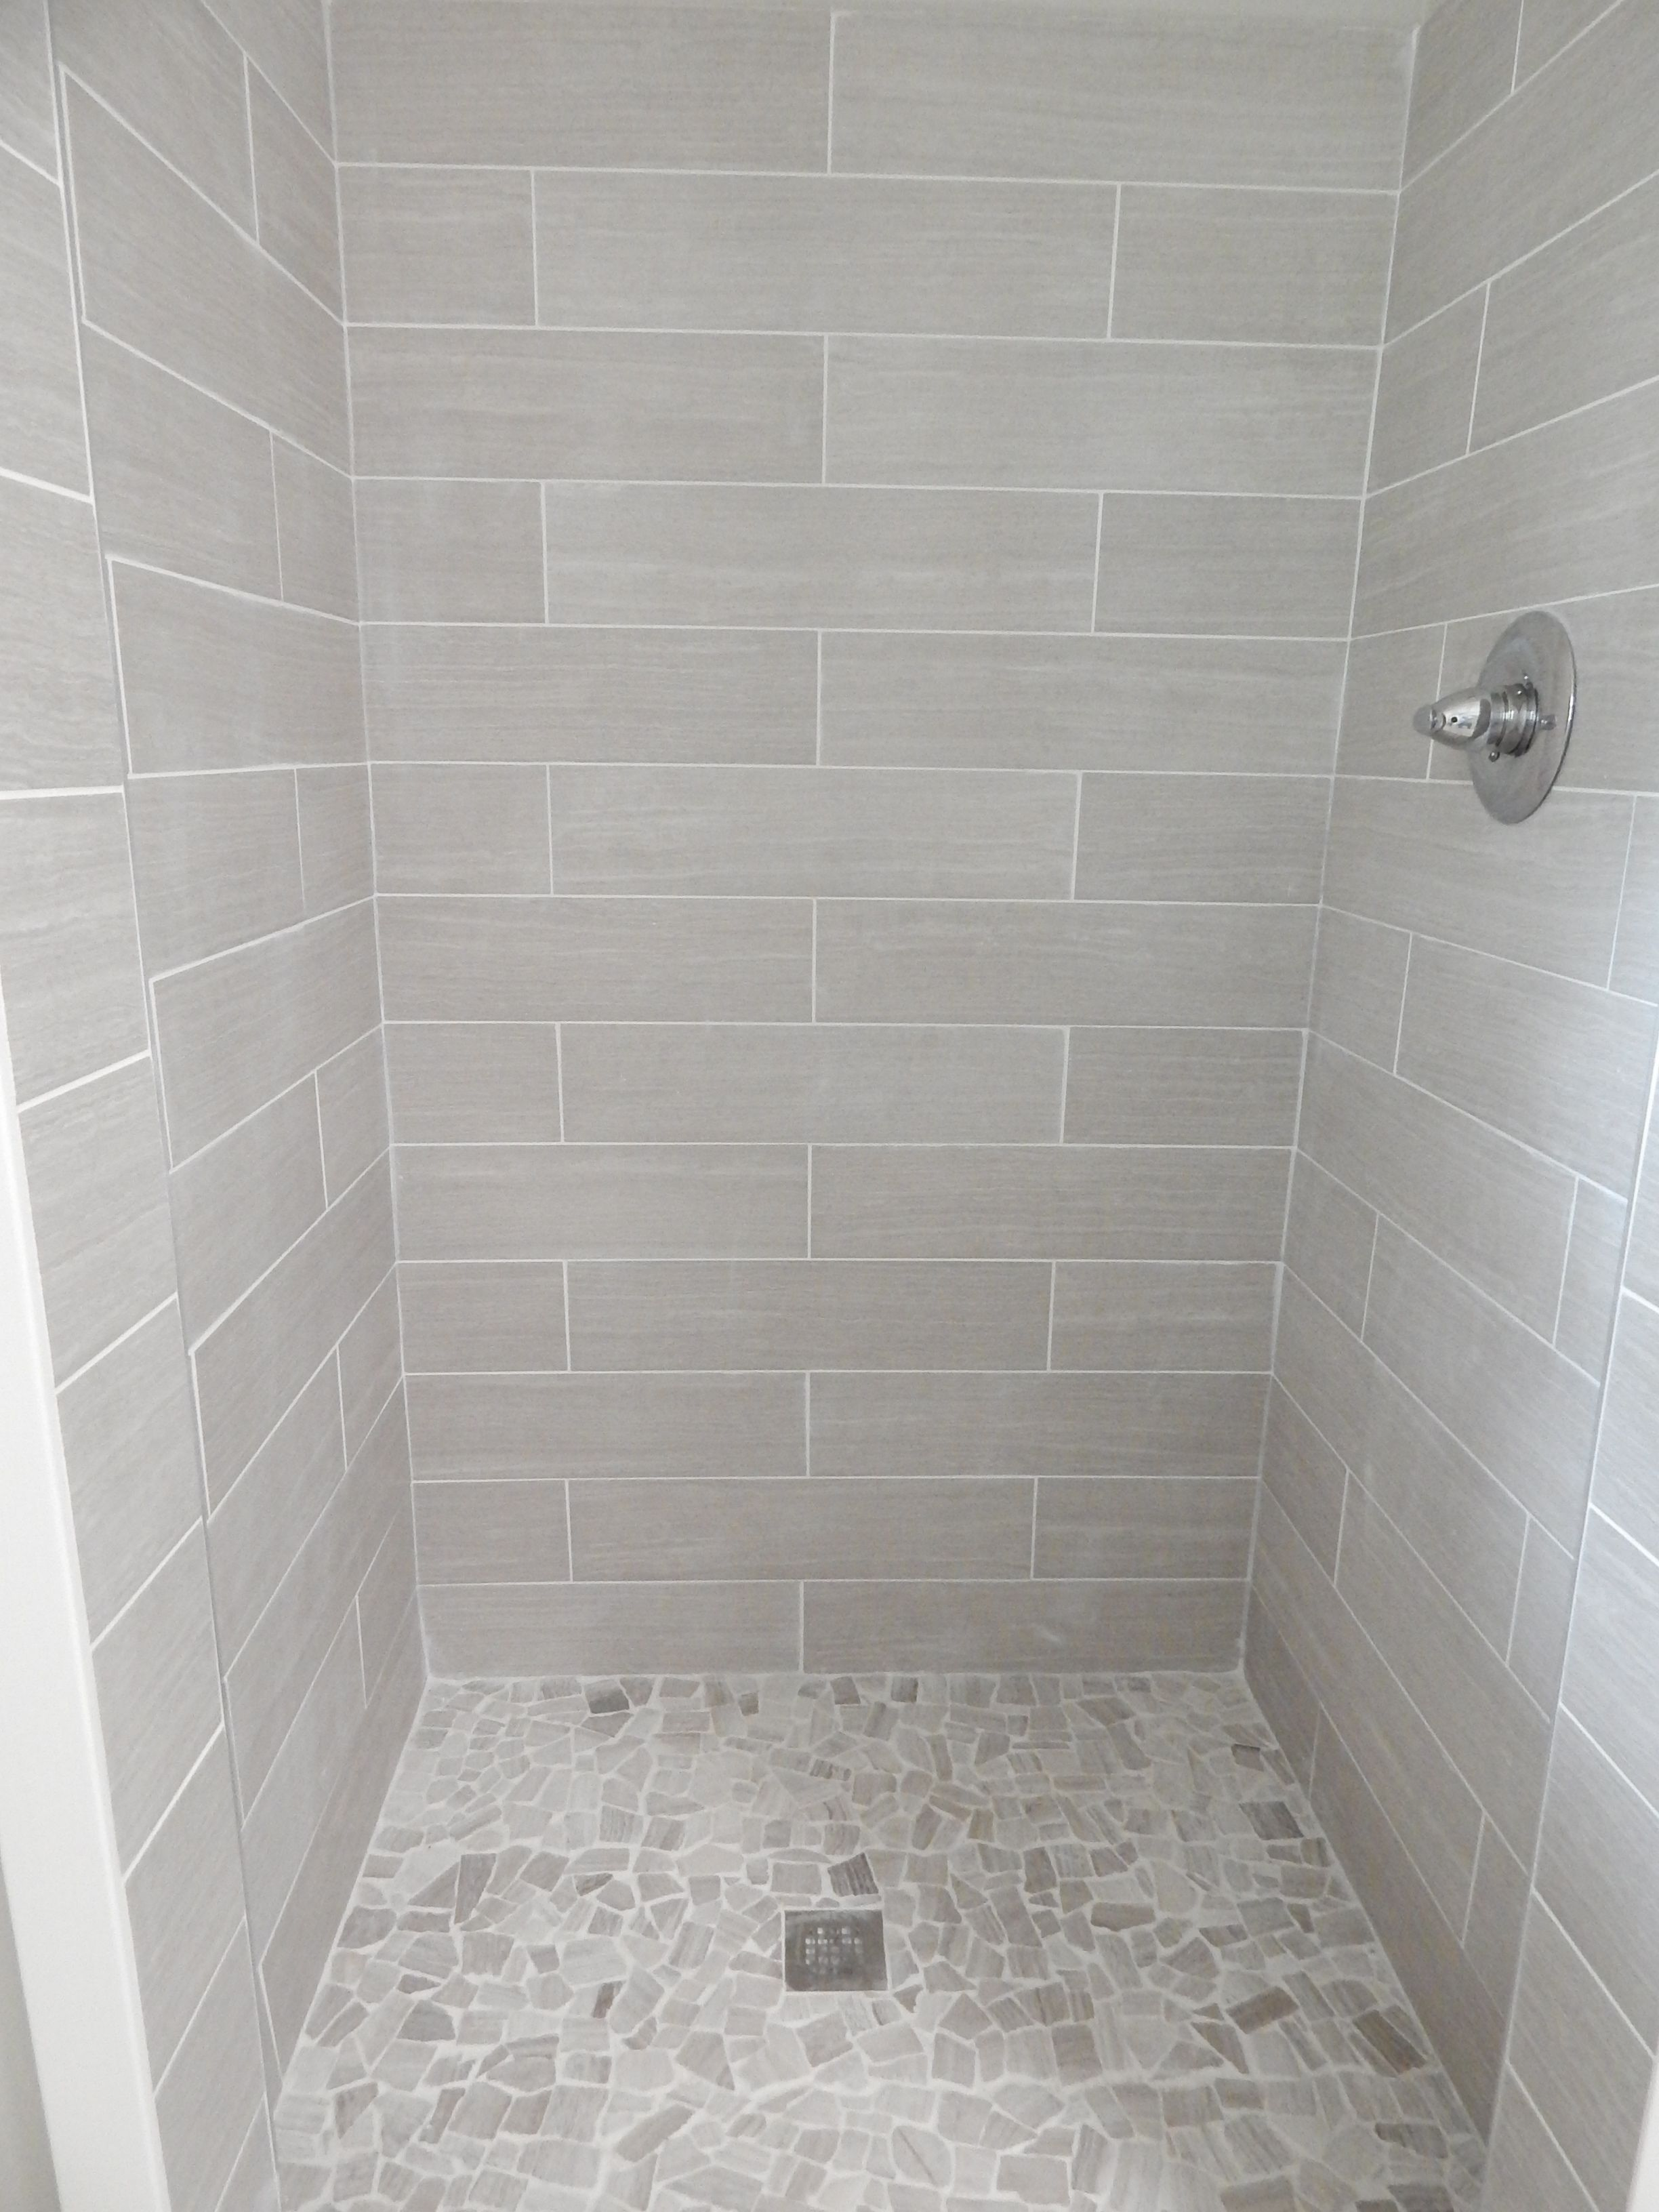 pebble shower home floor design tile ideas lowes bathroom